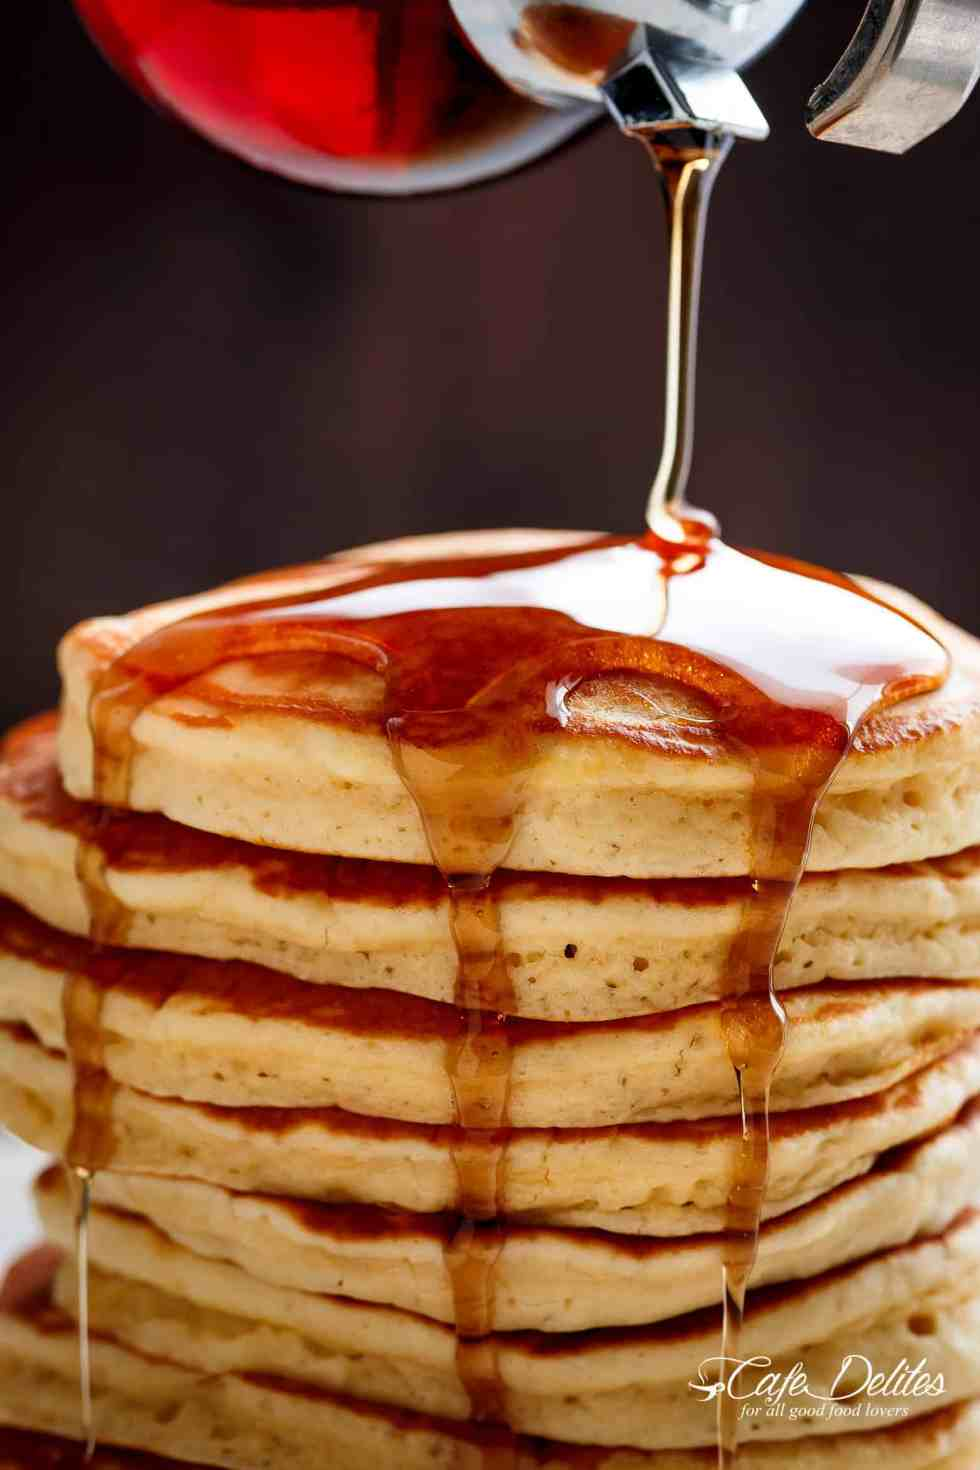 Blood Orange Olive Oil Pancakes Having Syrup Poured on A Stack of Them